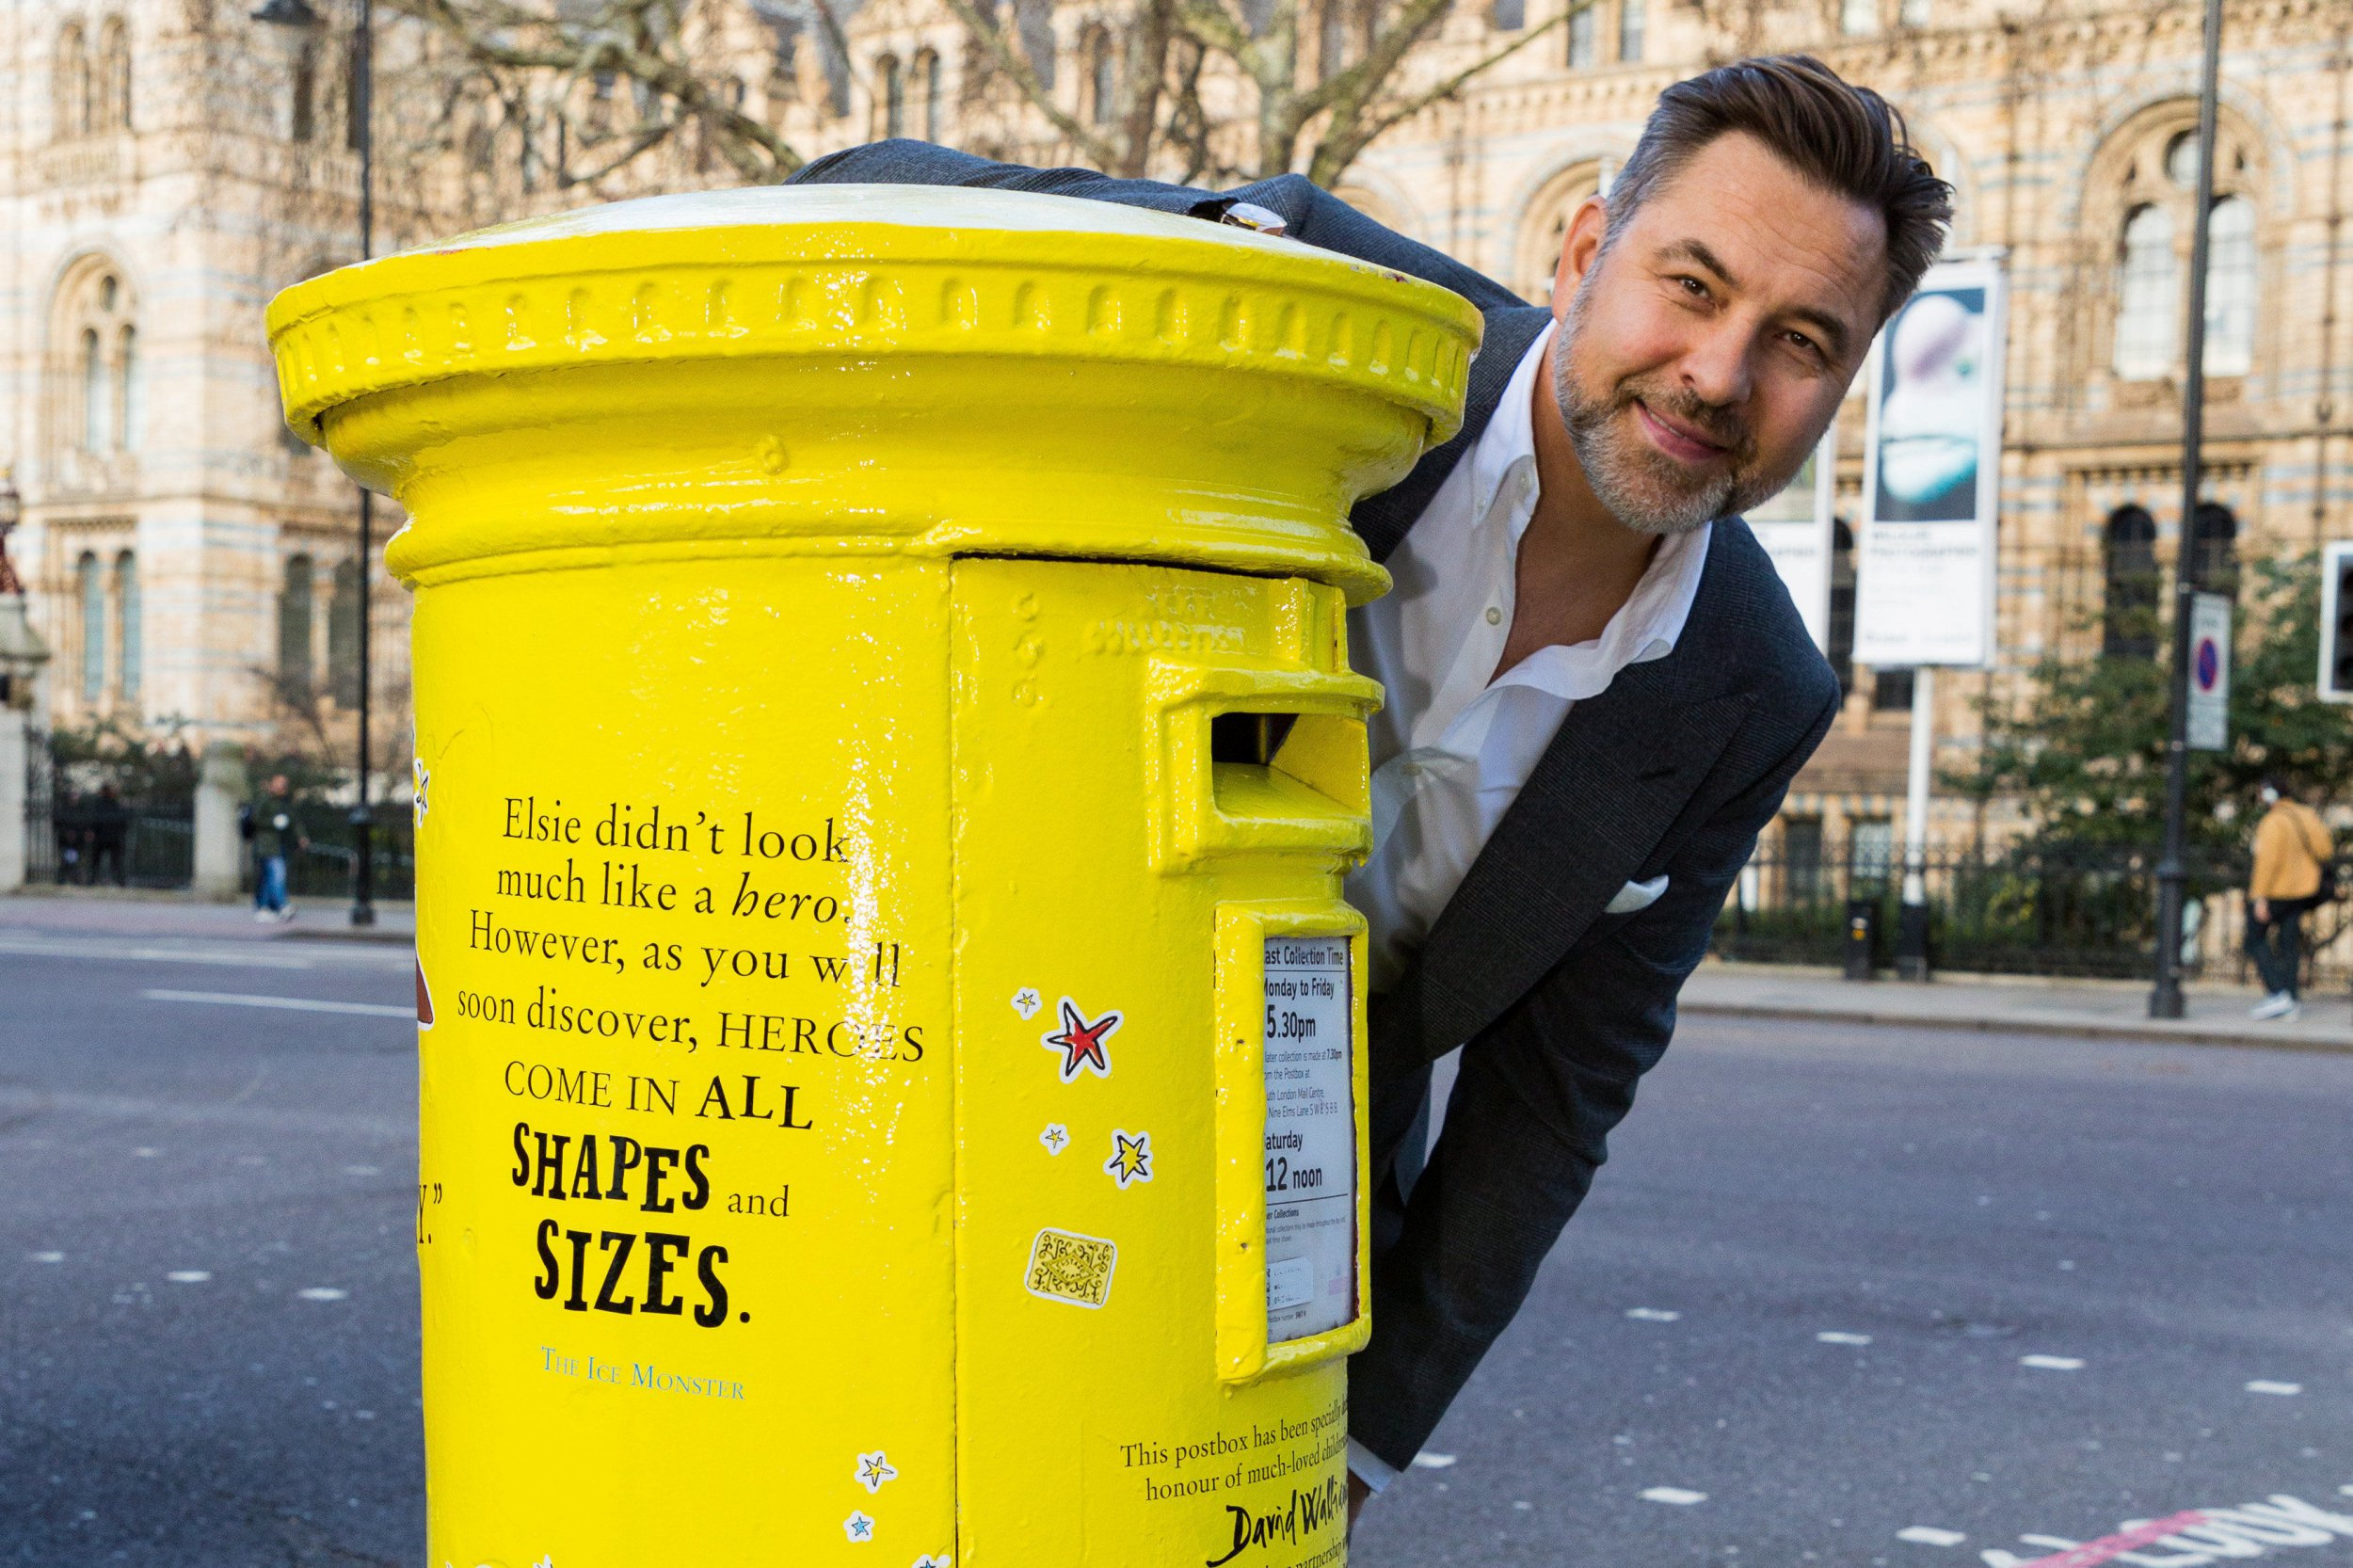 David Walliams honoured with very own postbox and what more could a guy want?